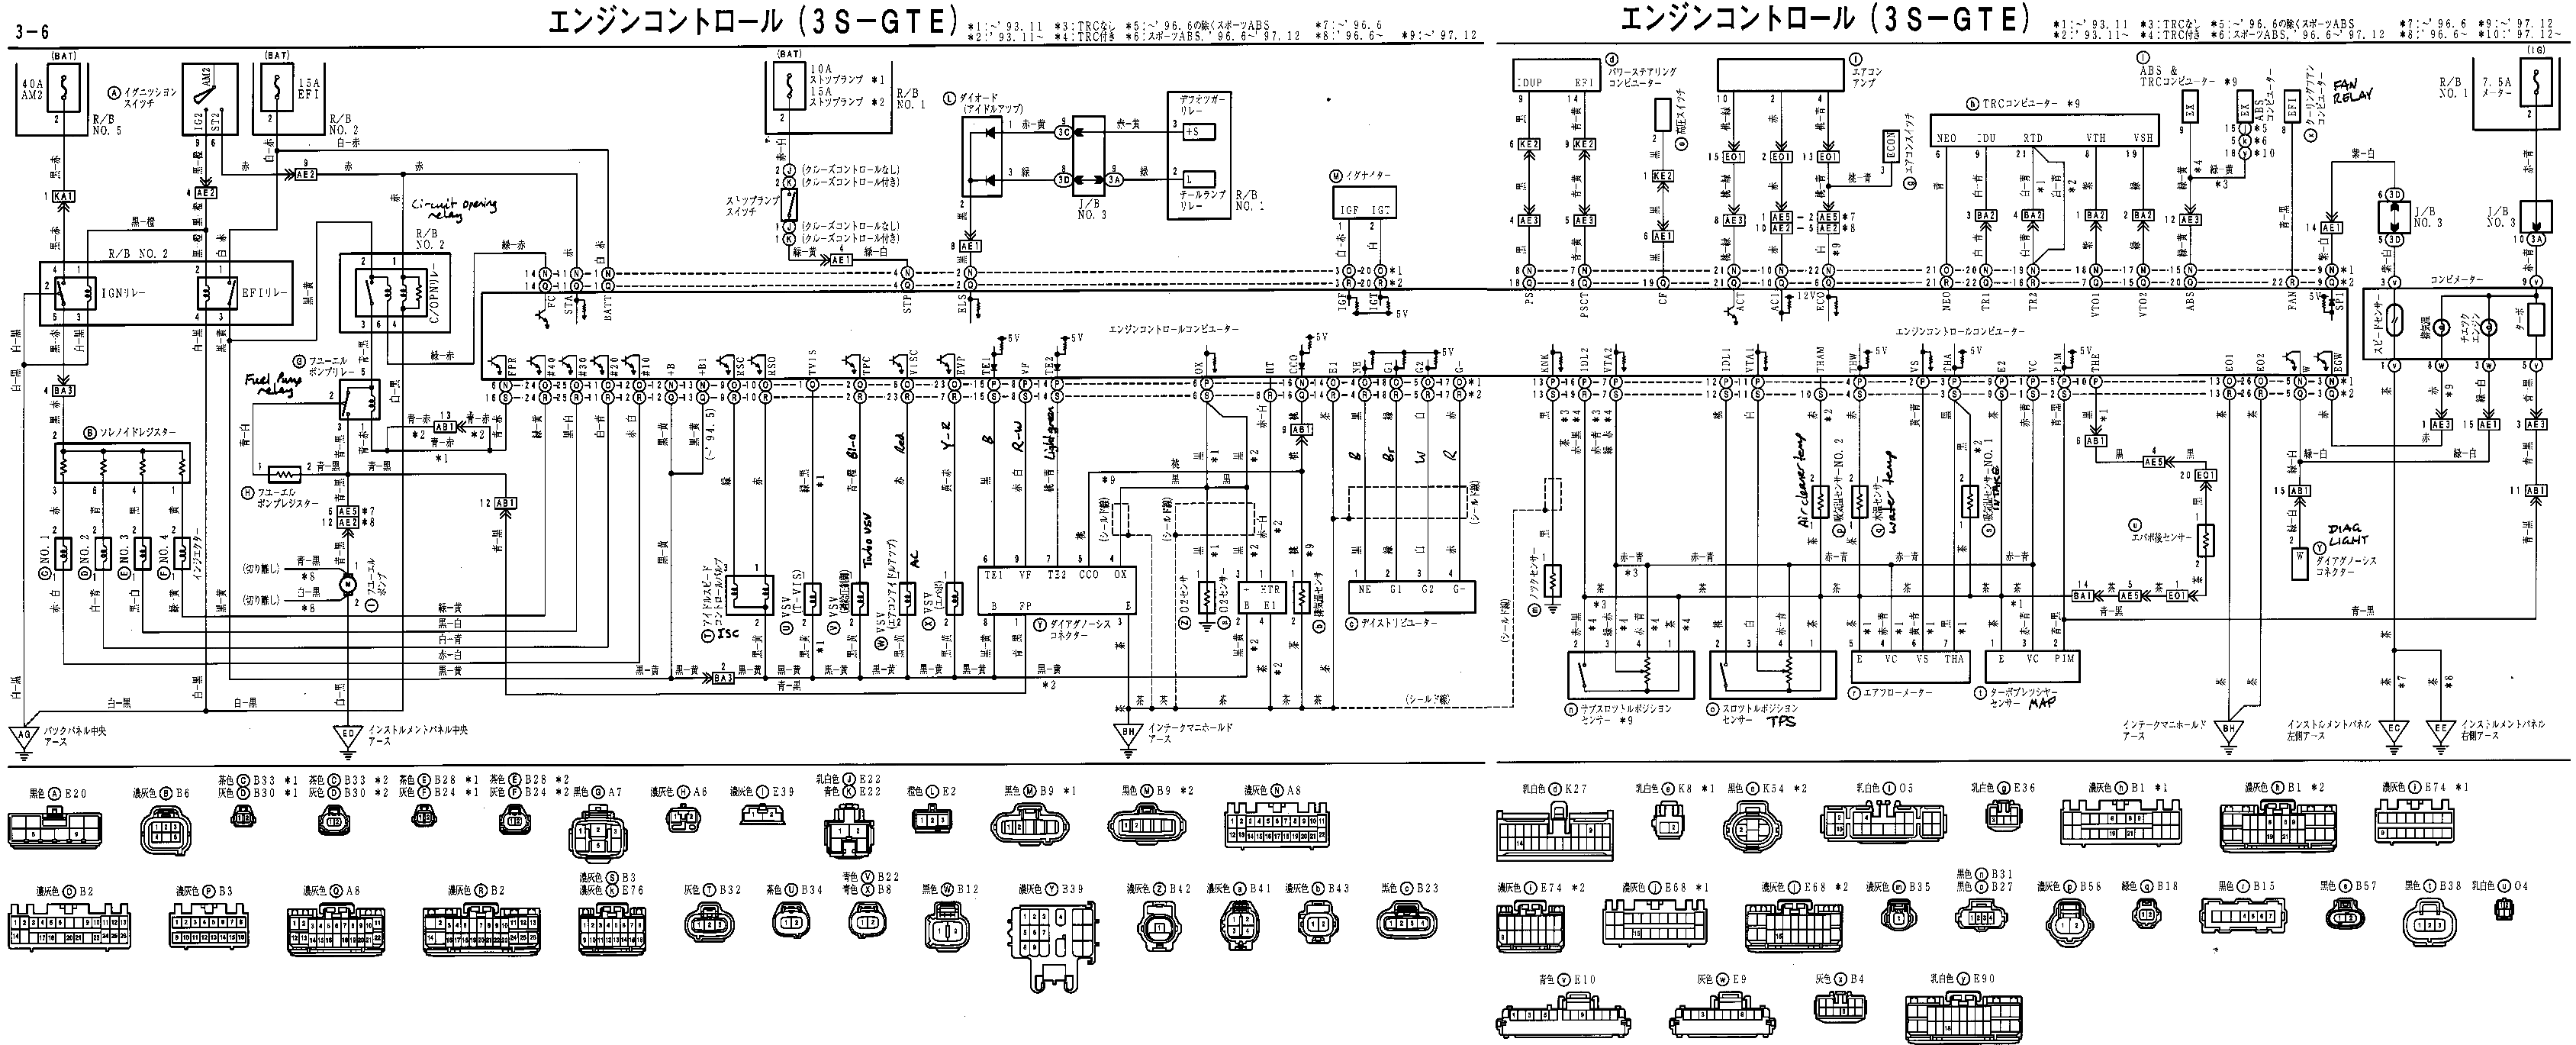 Toyota 3sgte Wiring Diagram Schematics Ae86 Ac Mwps Celica Gt4 St165 St185 St205 Documents Media 22re